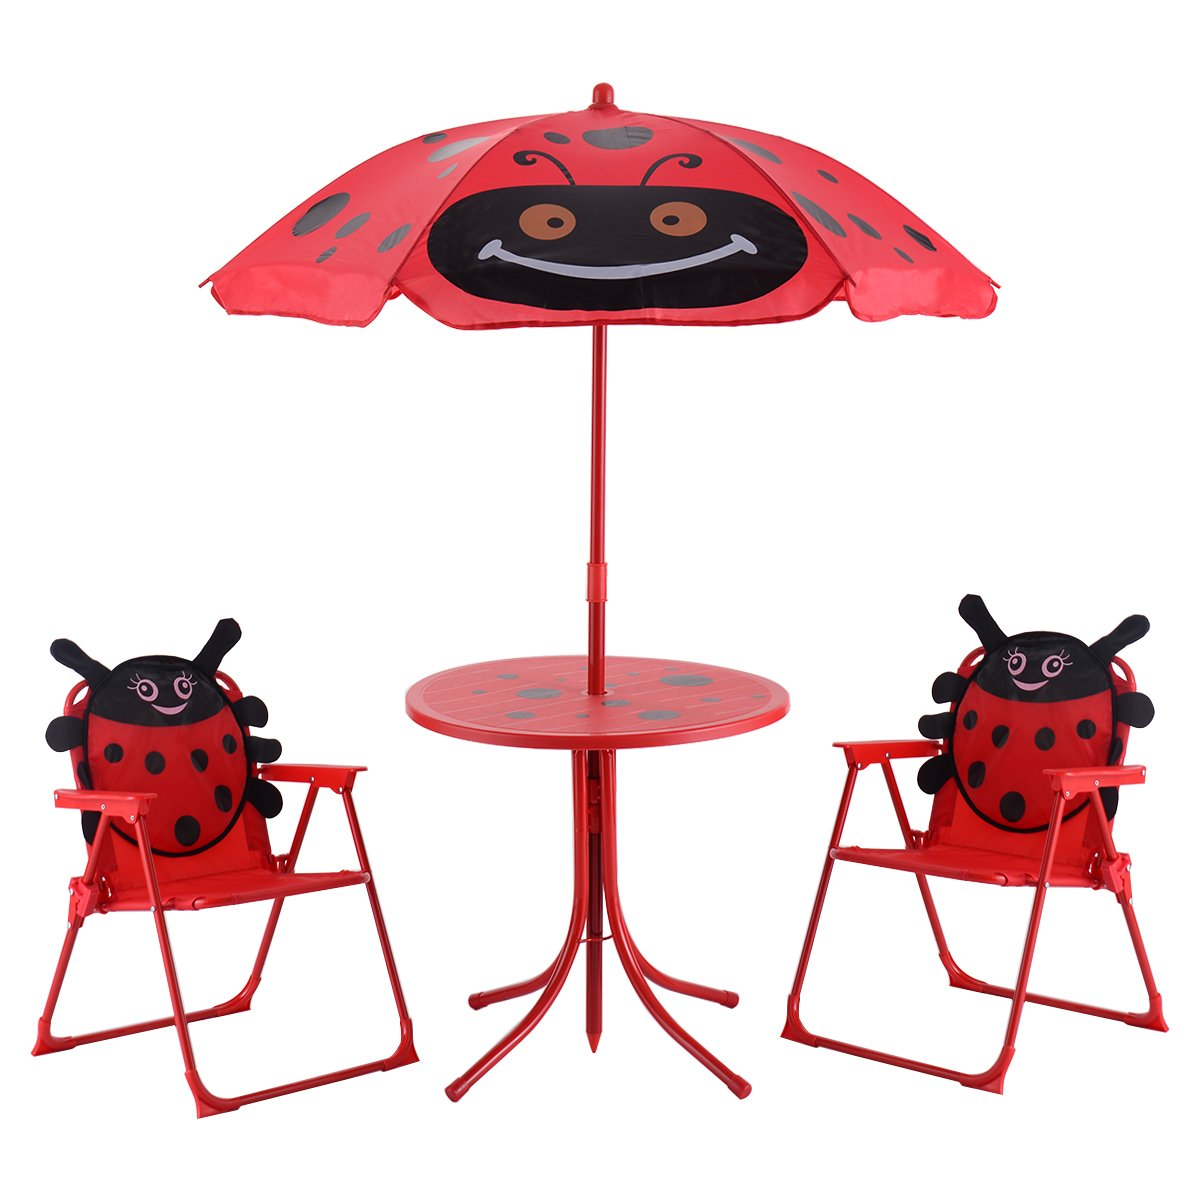 Cotzon Kids Patio Set, Ladybug Folding Table and Chair, Picnic Table with Removable Umbrella for Outdoor Garden